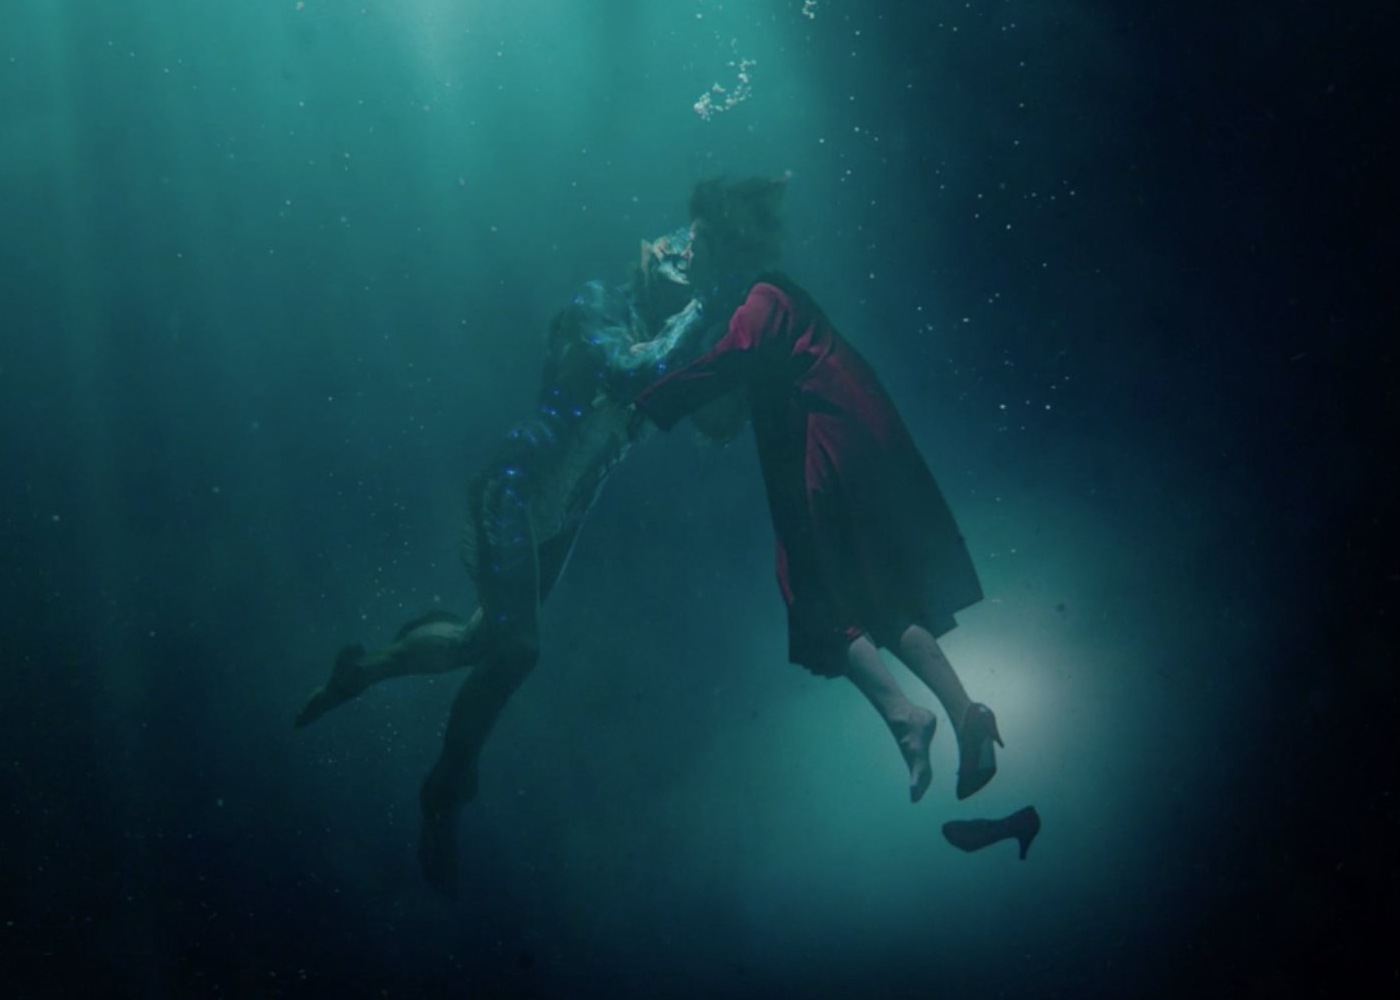 Guillermo del Toro Says 'Shape of Water' is Stand-Alone Fairytale